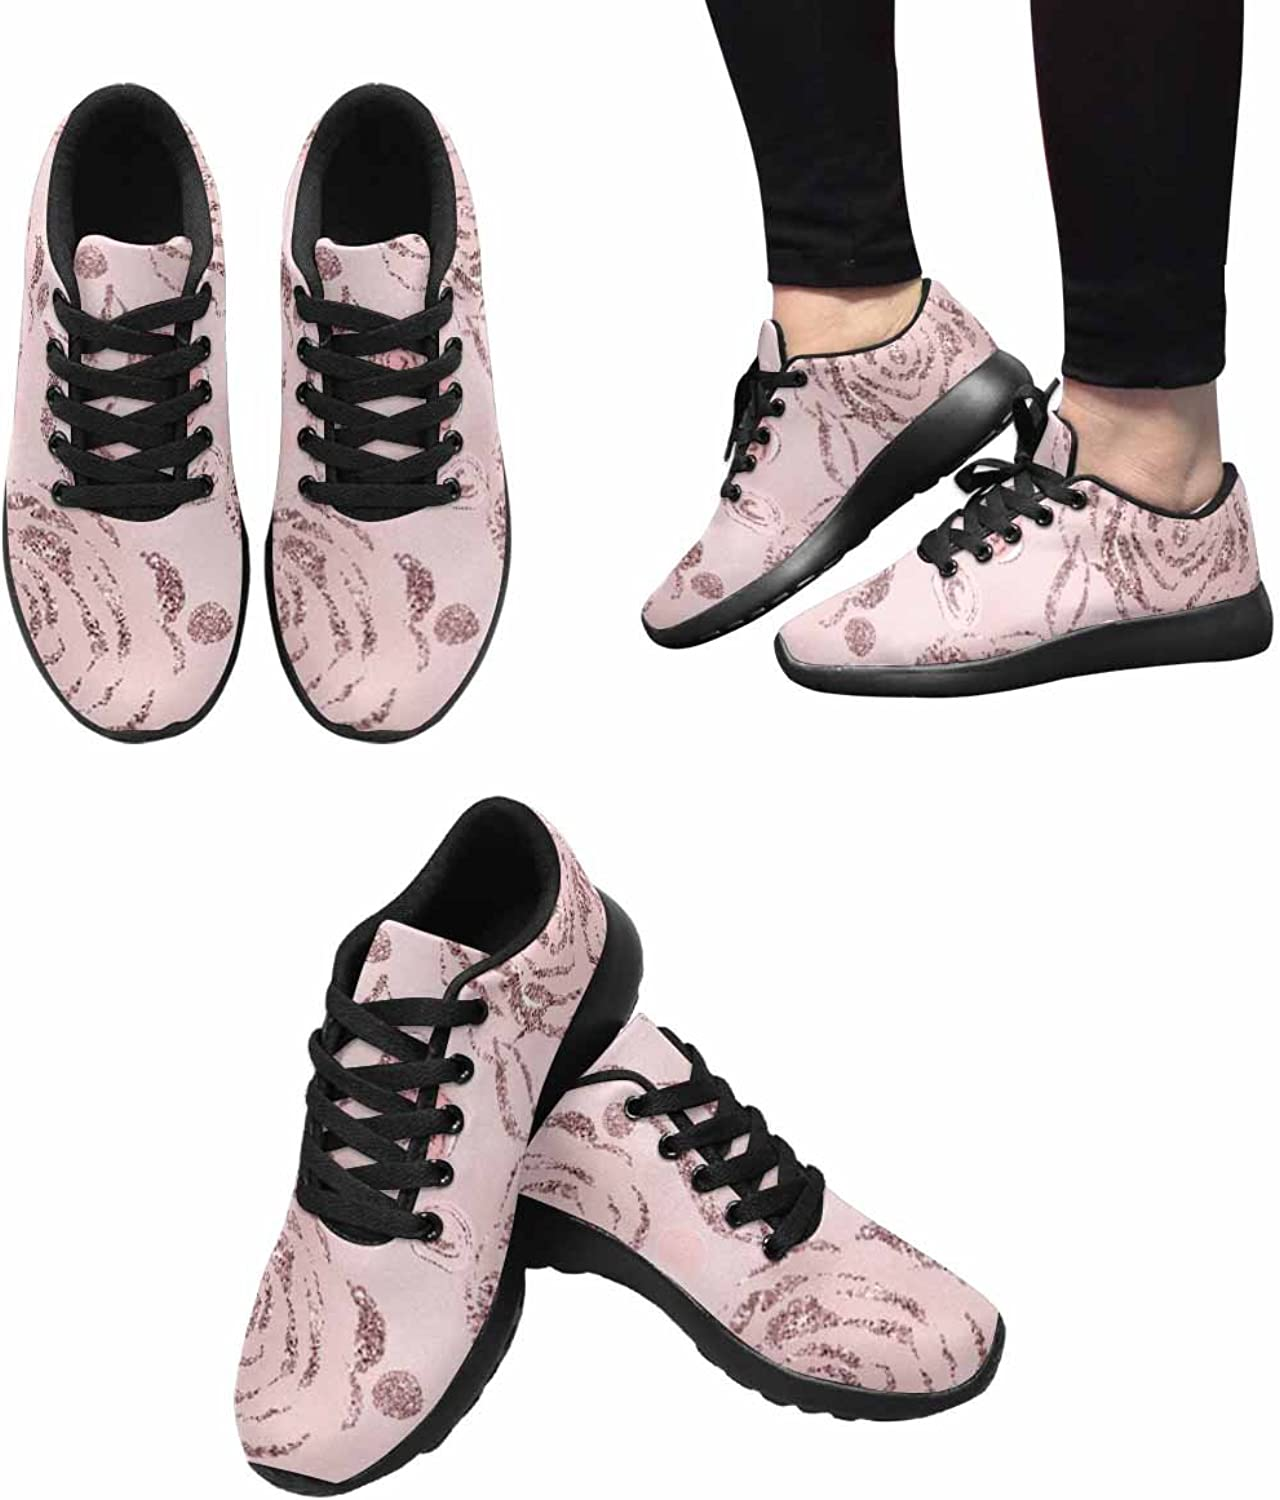 VIC Women's Lightweight Casual Walking Athletic shoes Breathable Running Sneakers